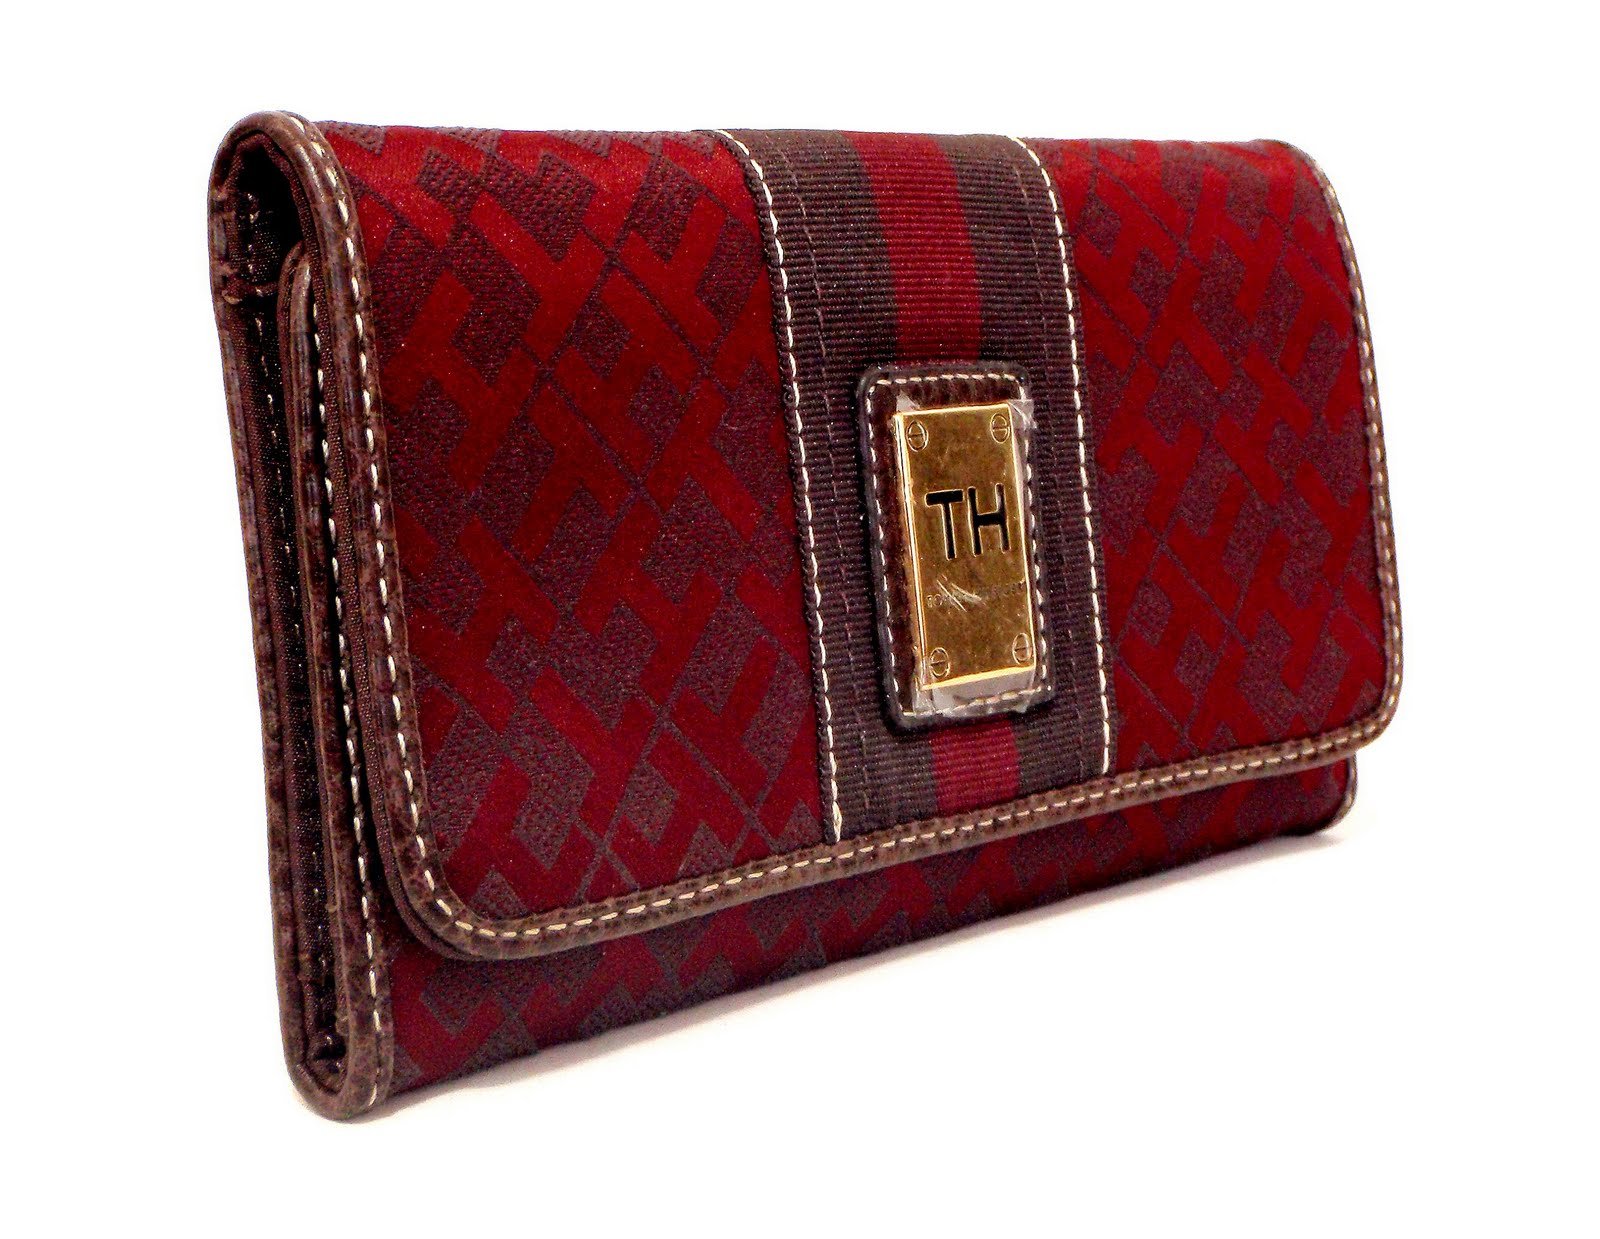 Boutique Malaysia Tommy Hilfiger Women Checbook Wallet